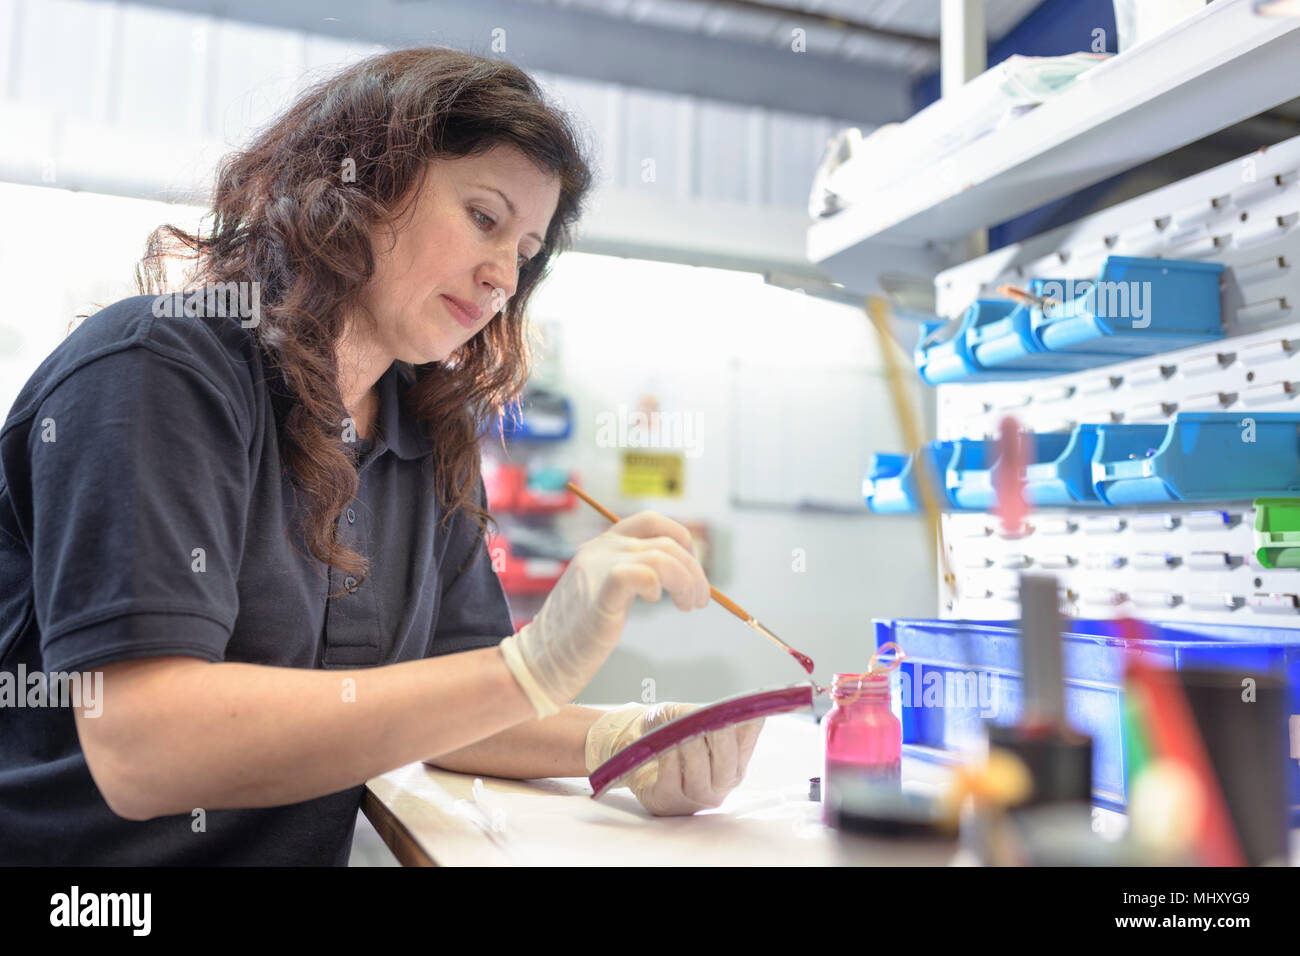 Female worker painting wax masking onto components in electroplating factory - Stock Image